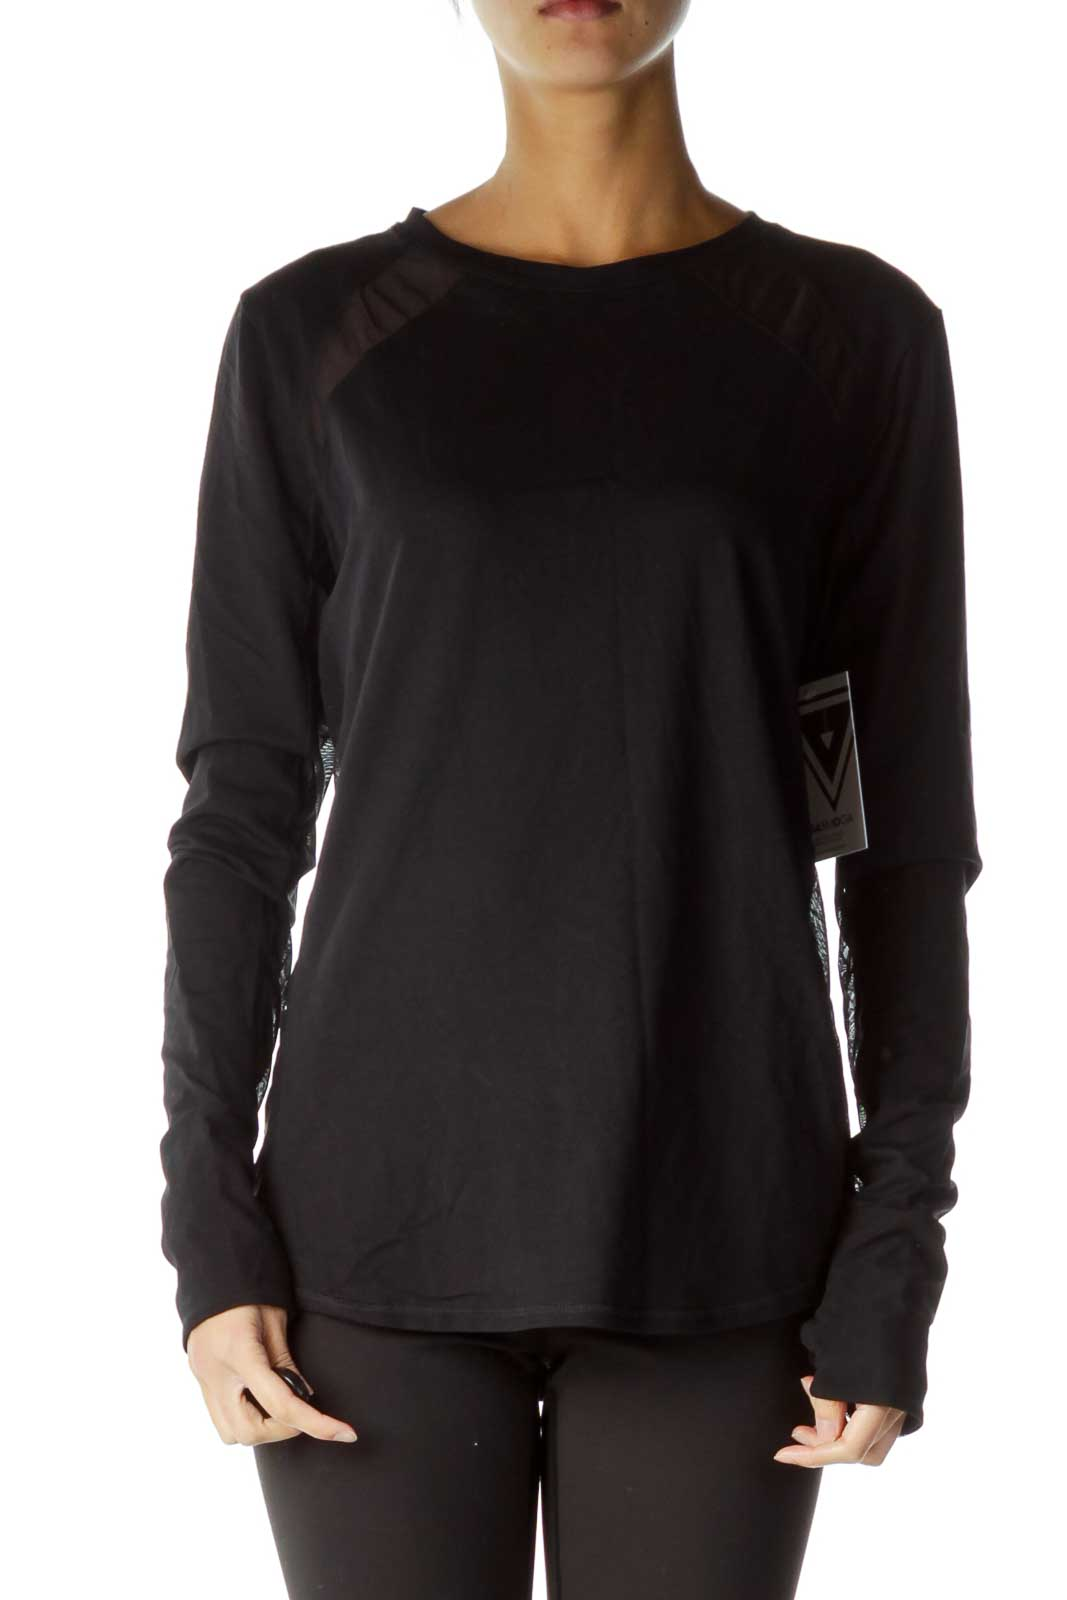 Black See-through Cut Out Sweatshirt Front